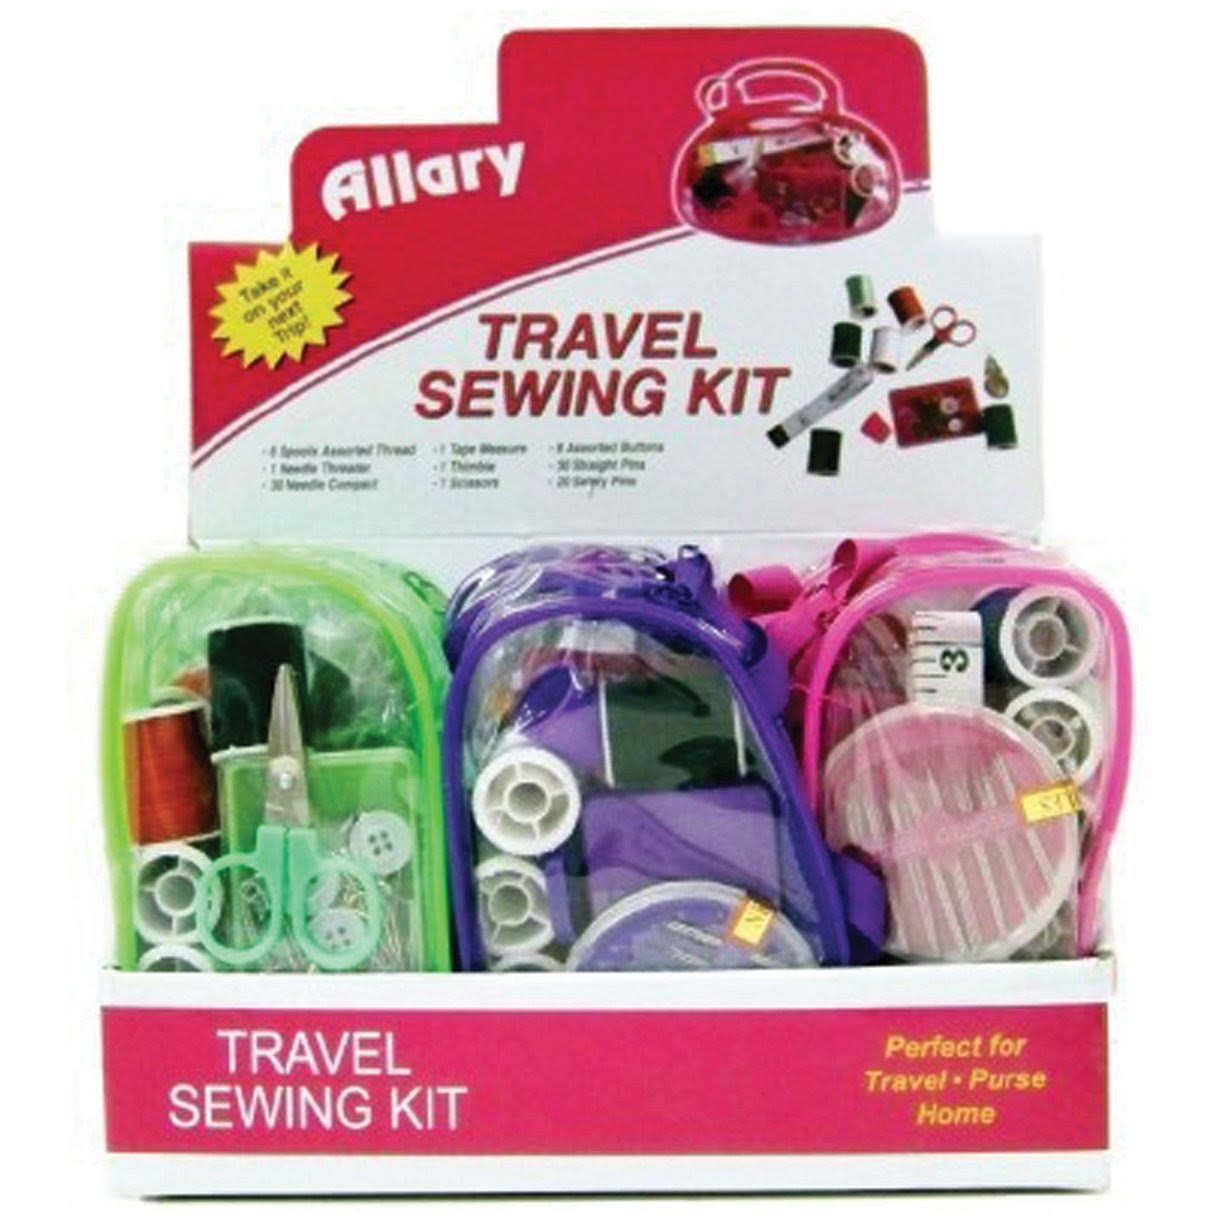 Allary Travel Sewing Kit